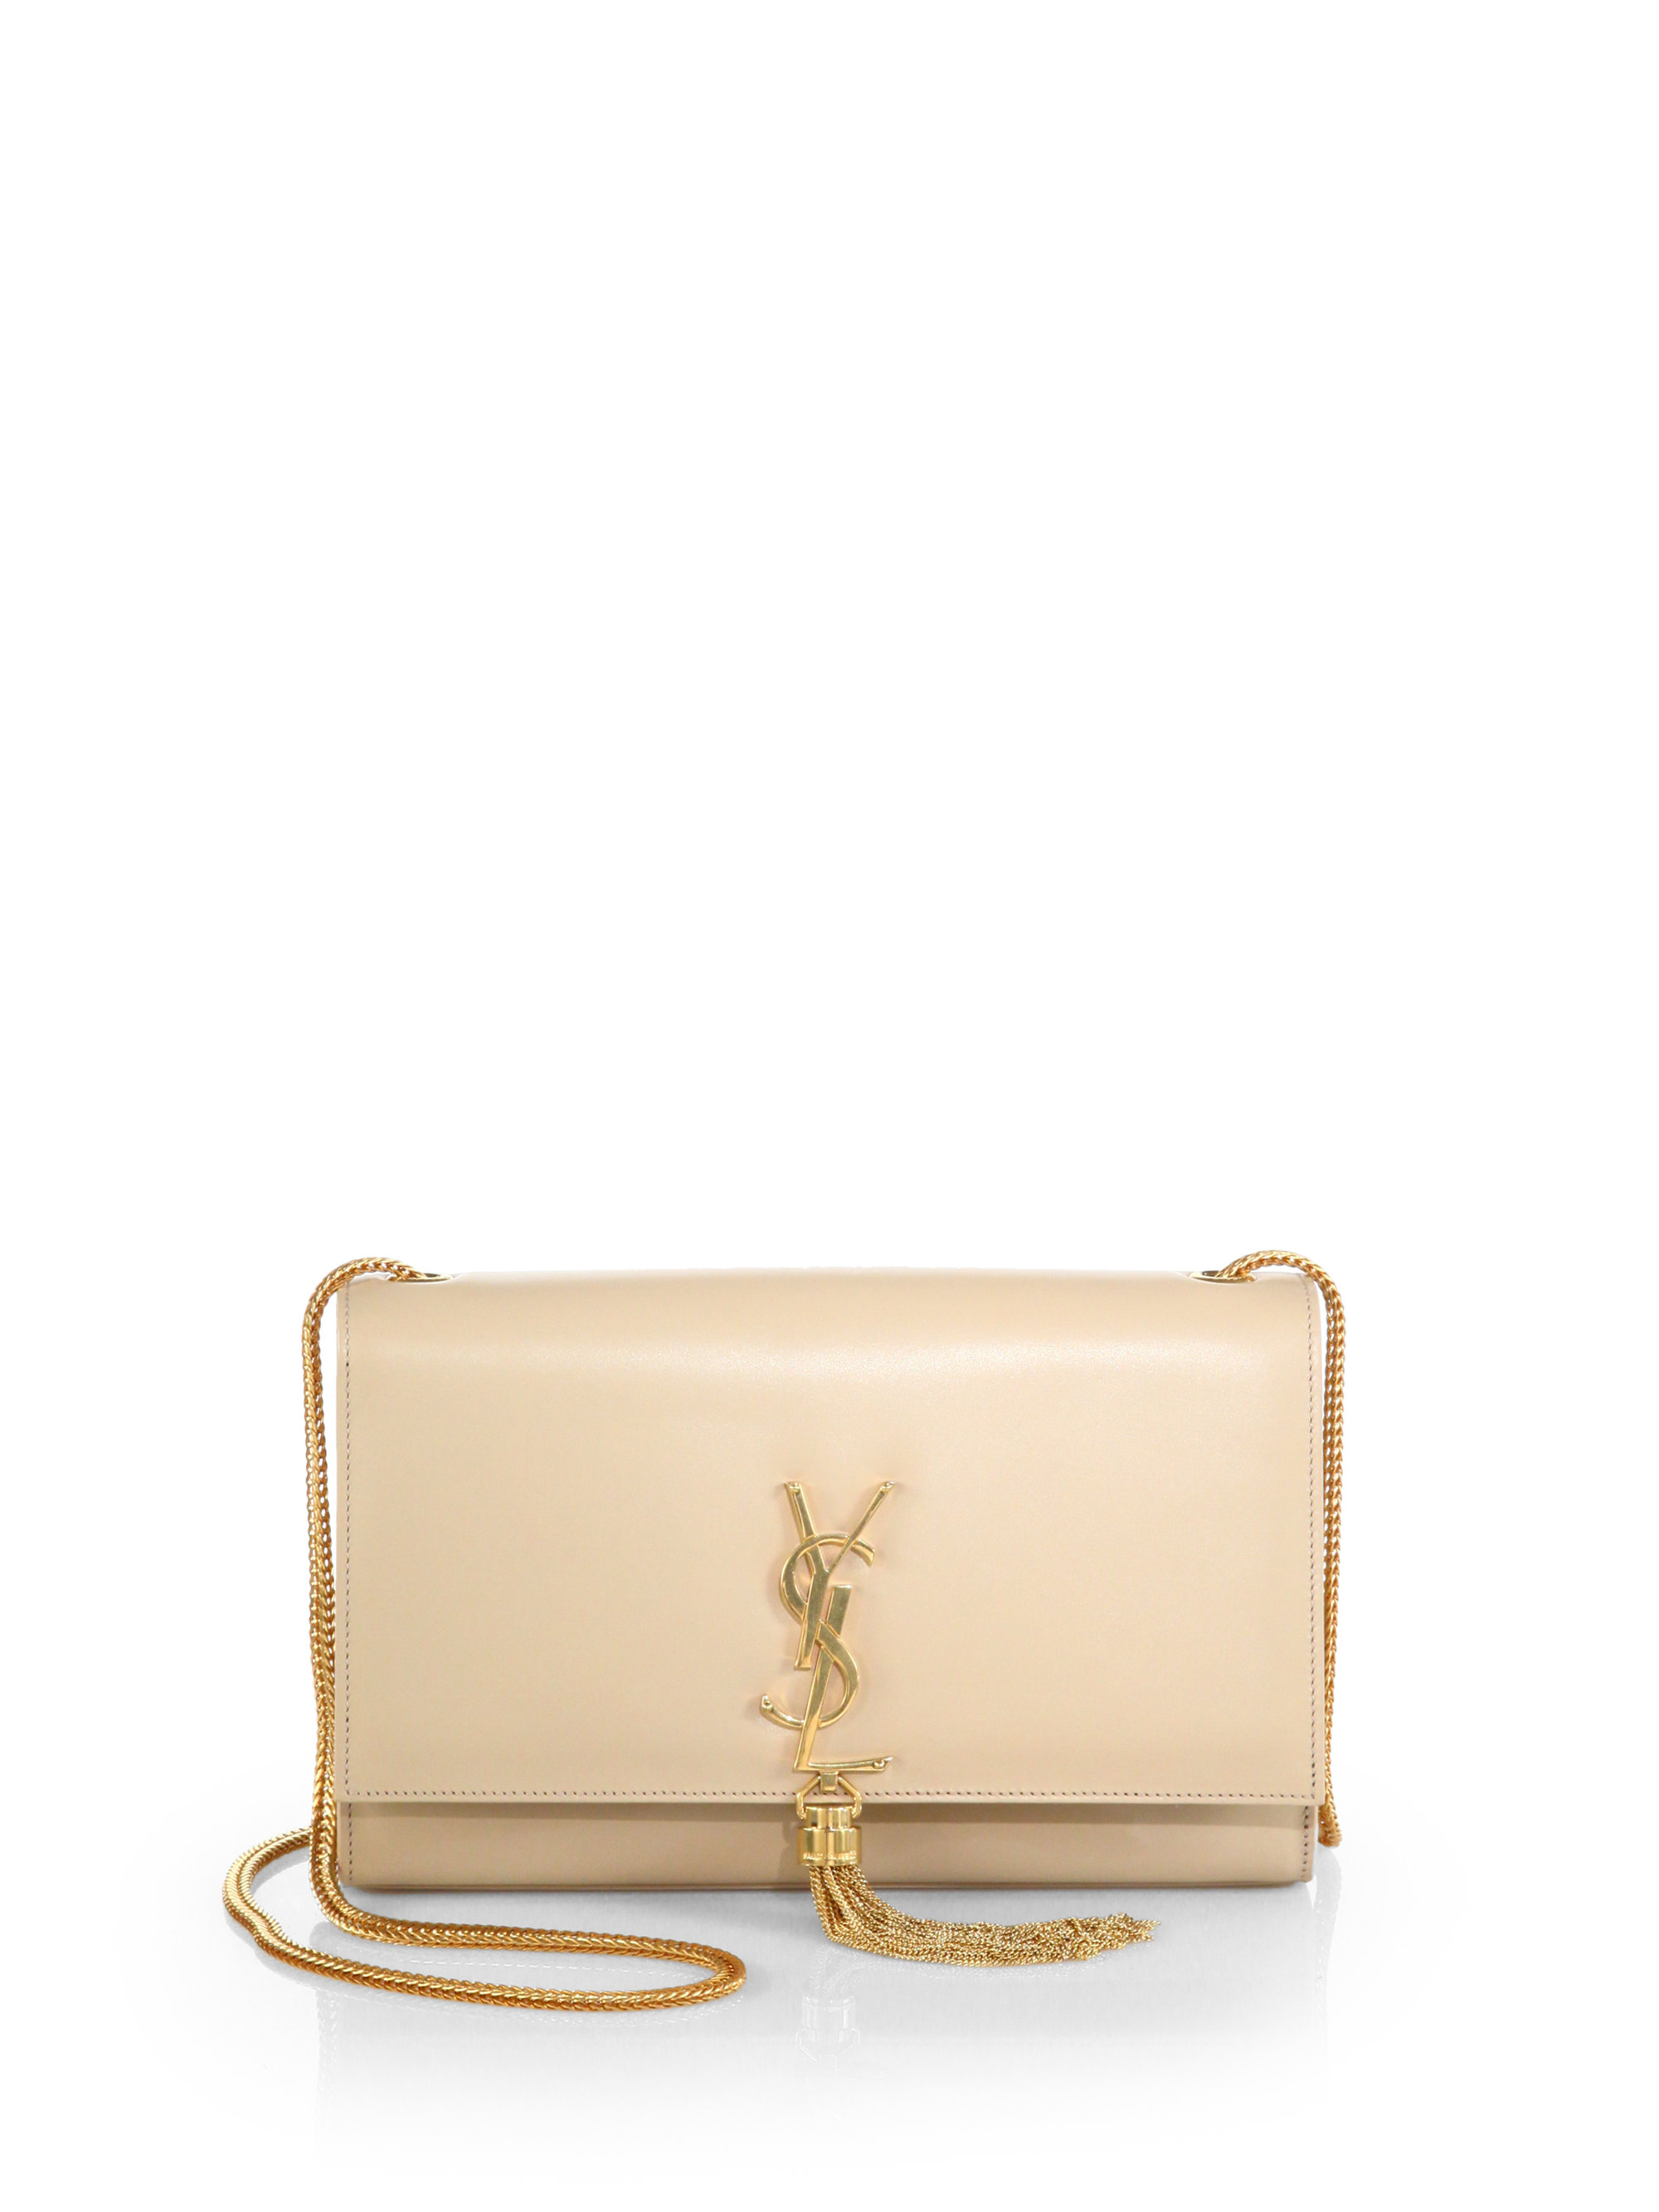 0a37eef69d Lyst - Saint Laurent Cassandre Tassel Shoulder Bag in Natural